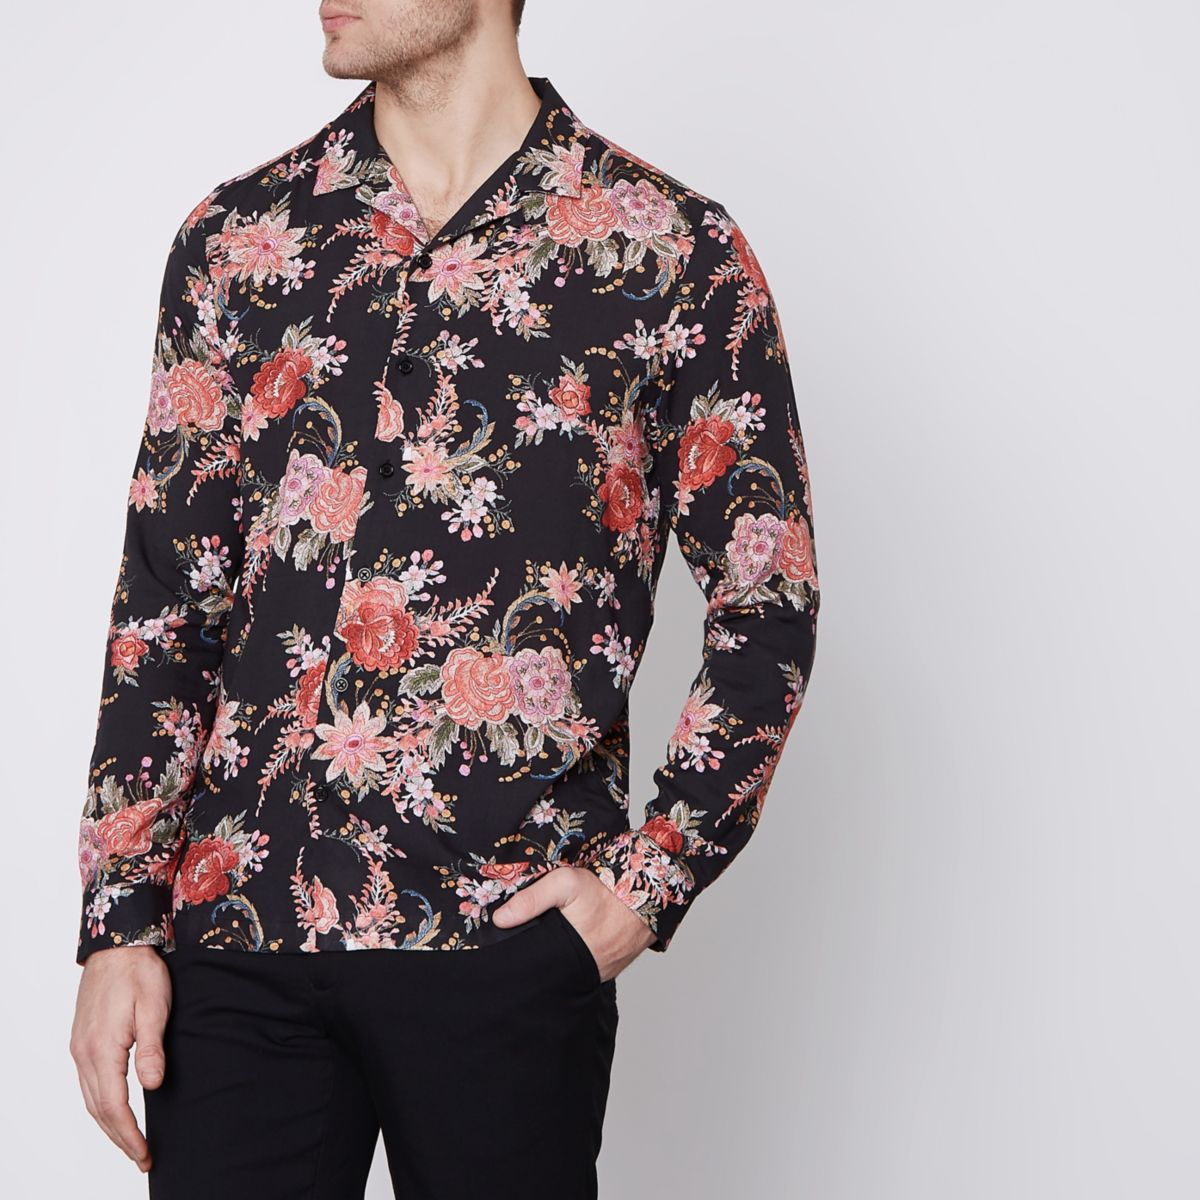 Black floral revere long sleeve shirt